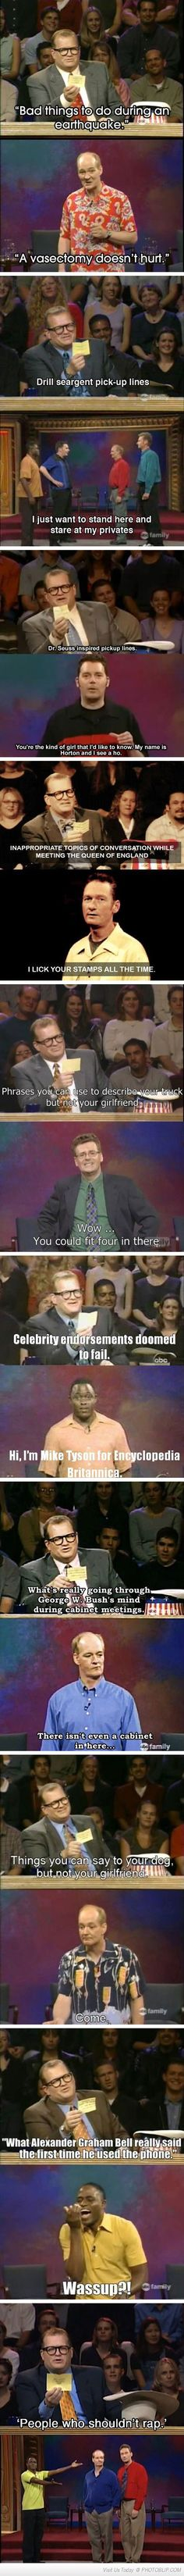 Whose Line Quotes. So funny!!